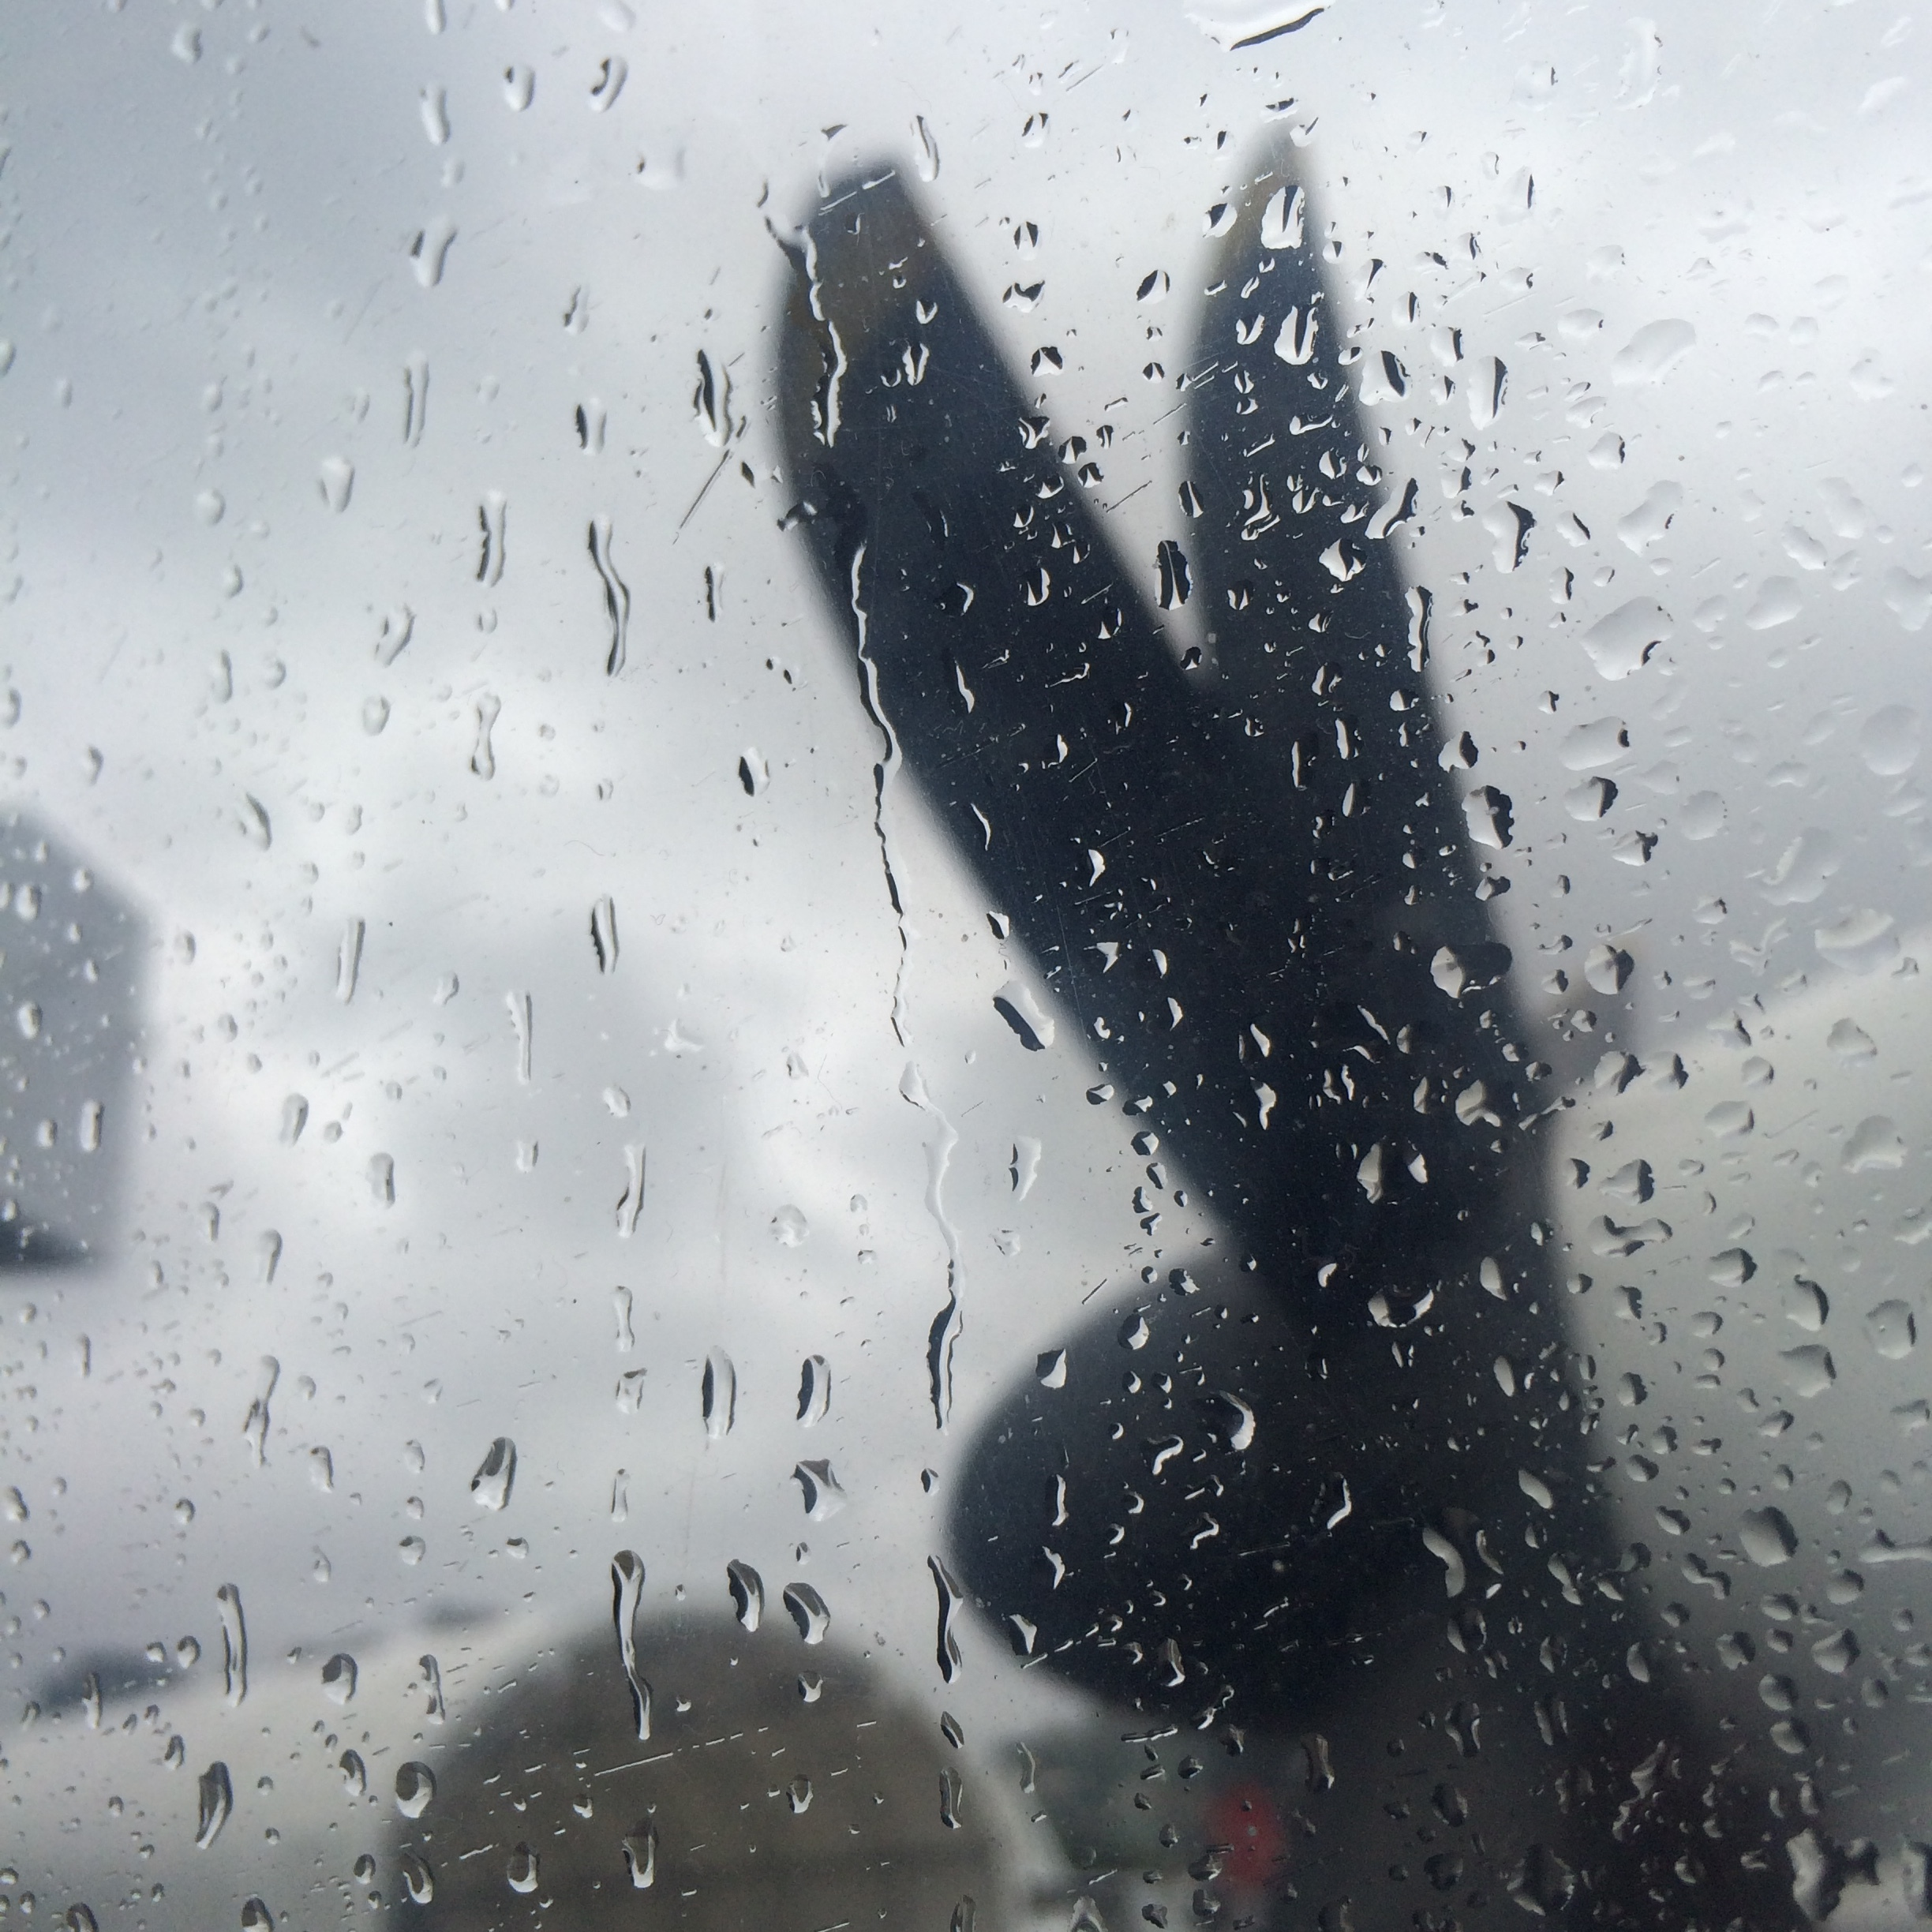 Rainy flight on a prop plane - September 2016